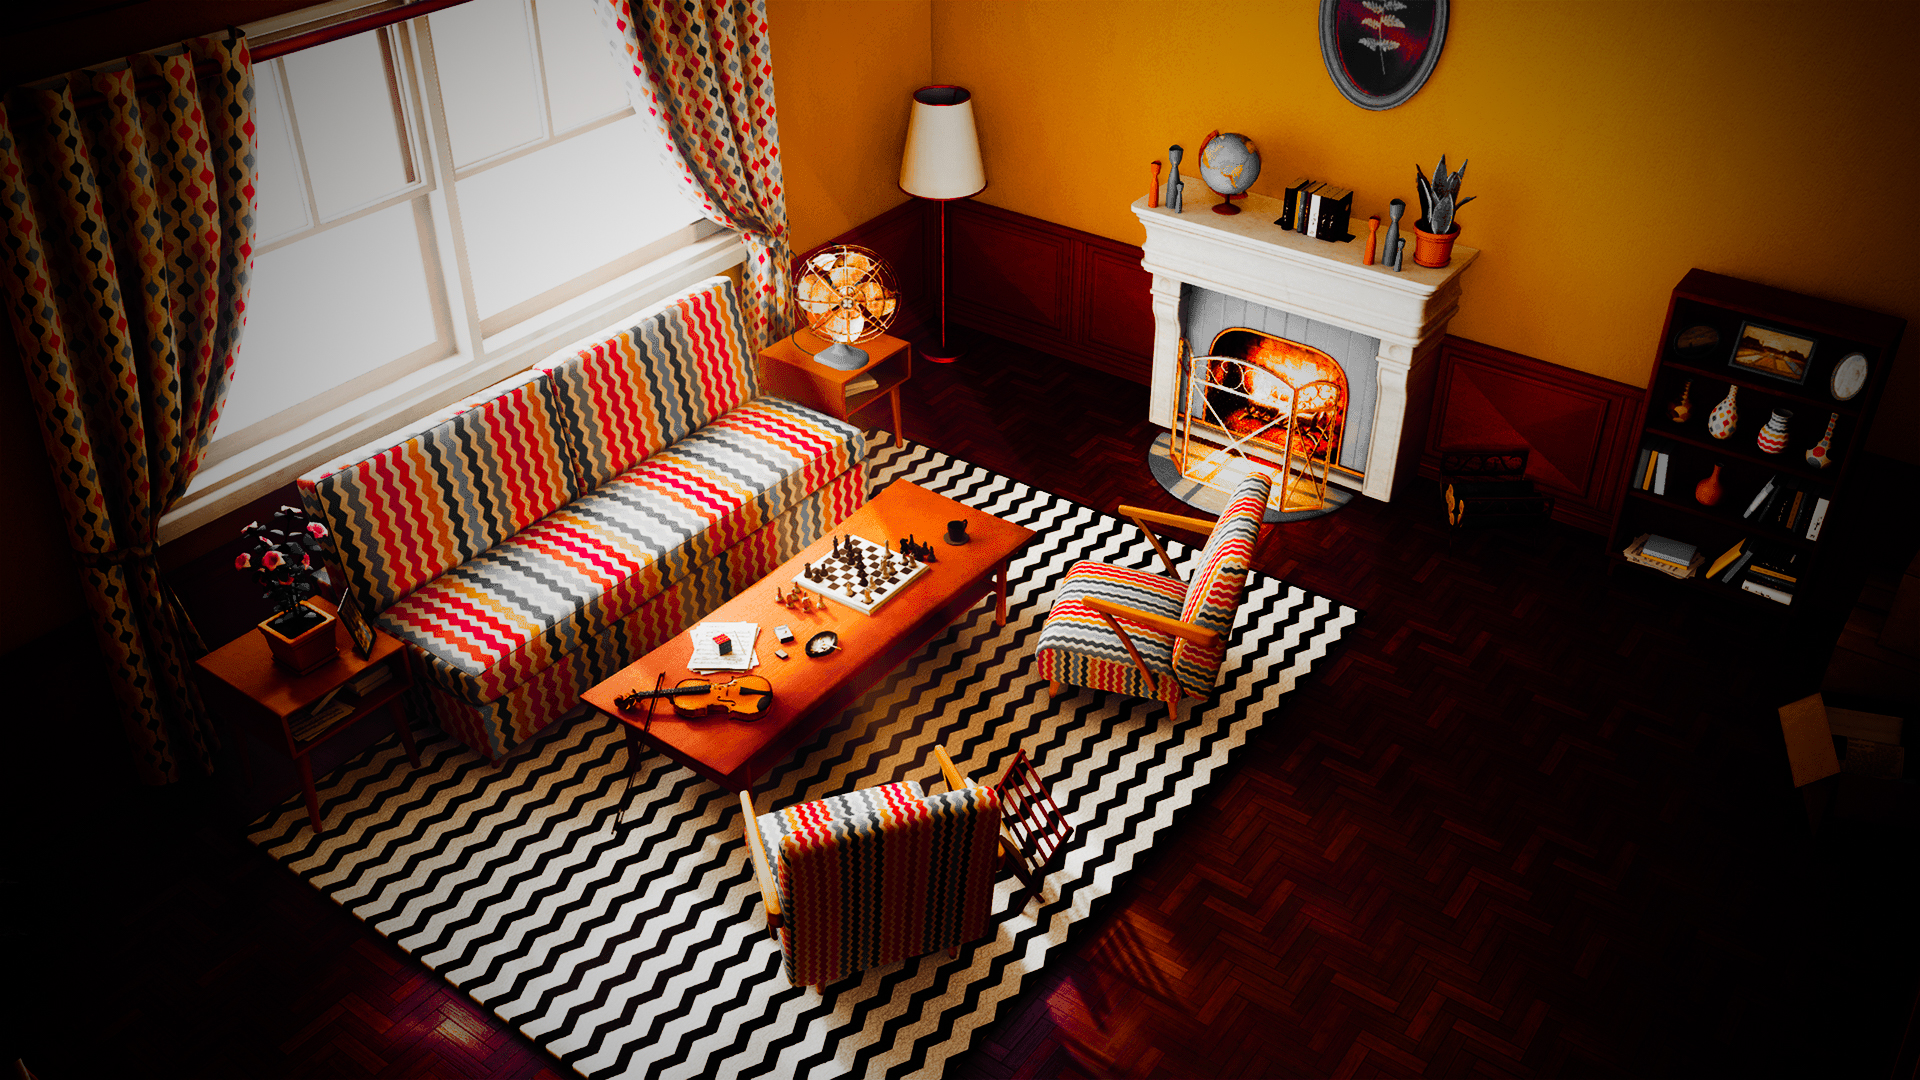 Retro Decor Ideas to Try at Your Home | Southern Pride Painting llc